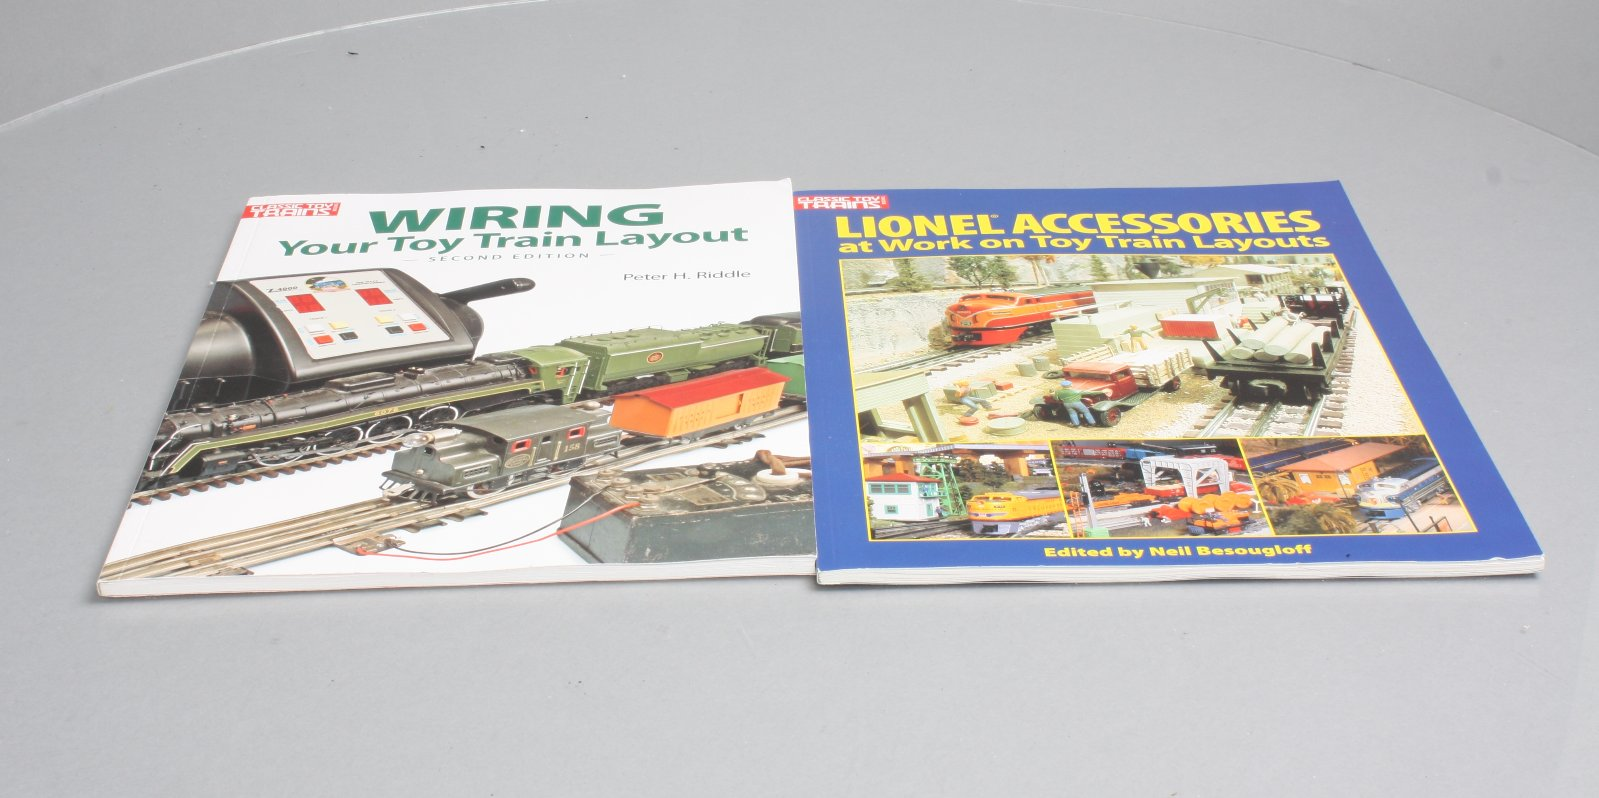 Buy Clic Toy Trains Wiring Your Layout Book & Lionel ... Wiring Your Toy Train Layout on